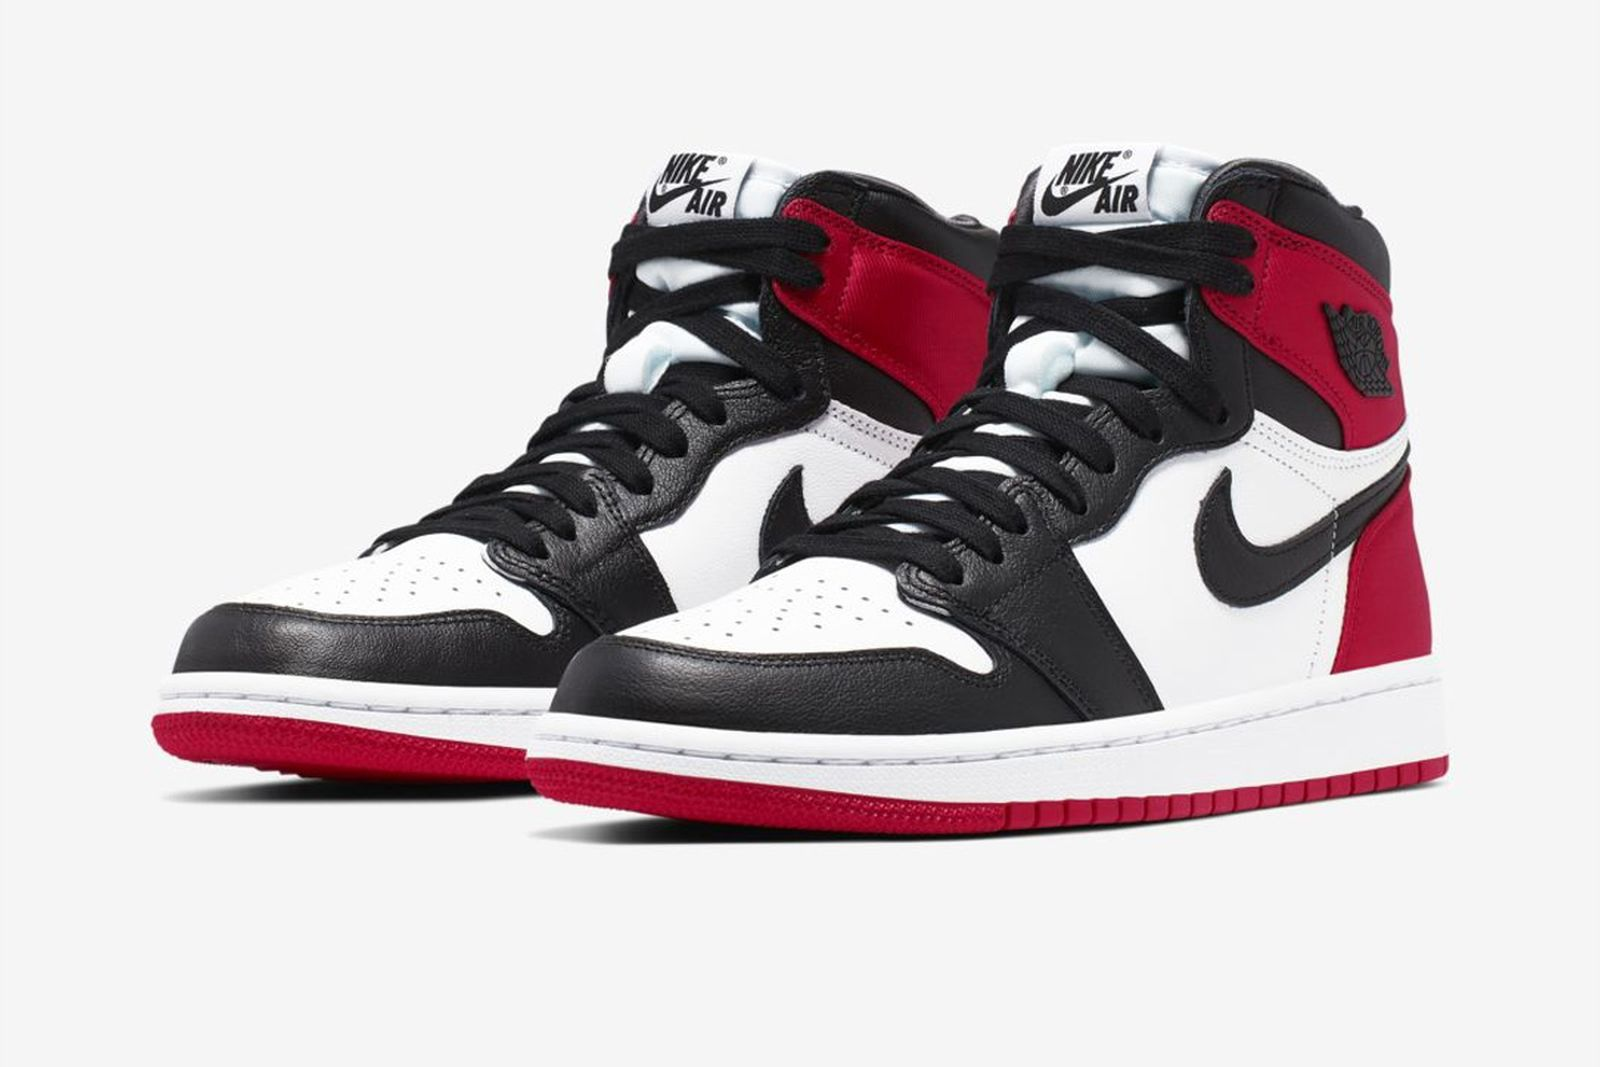 nike air jordan 1 satin black toe release date price product jordan brand